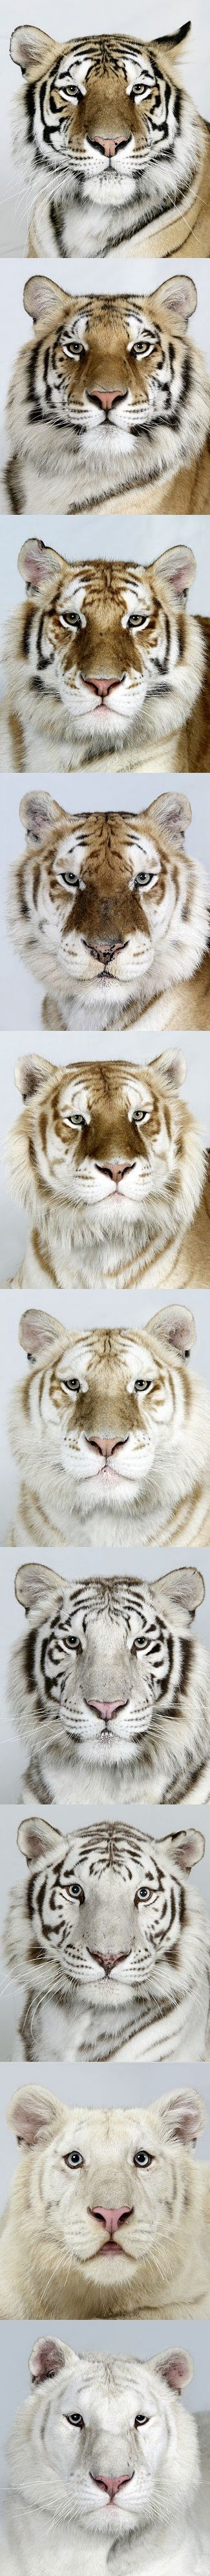 tiger-race...amazing animal..tattoo inspiration